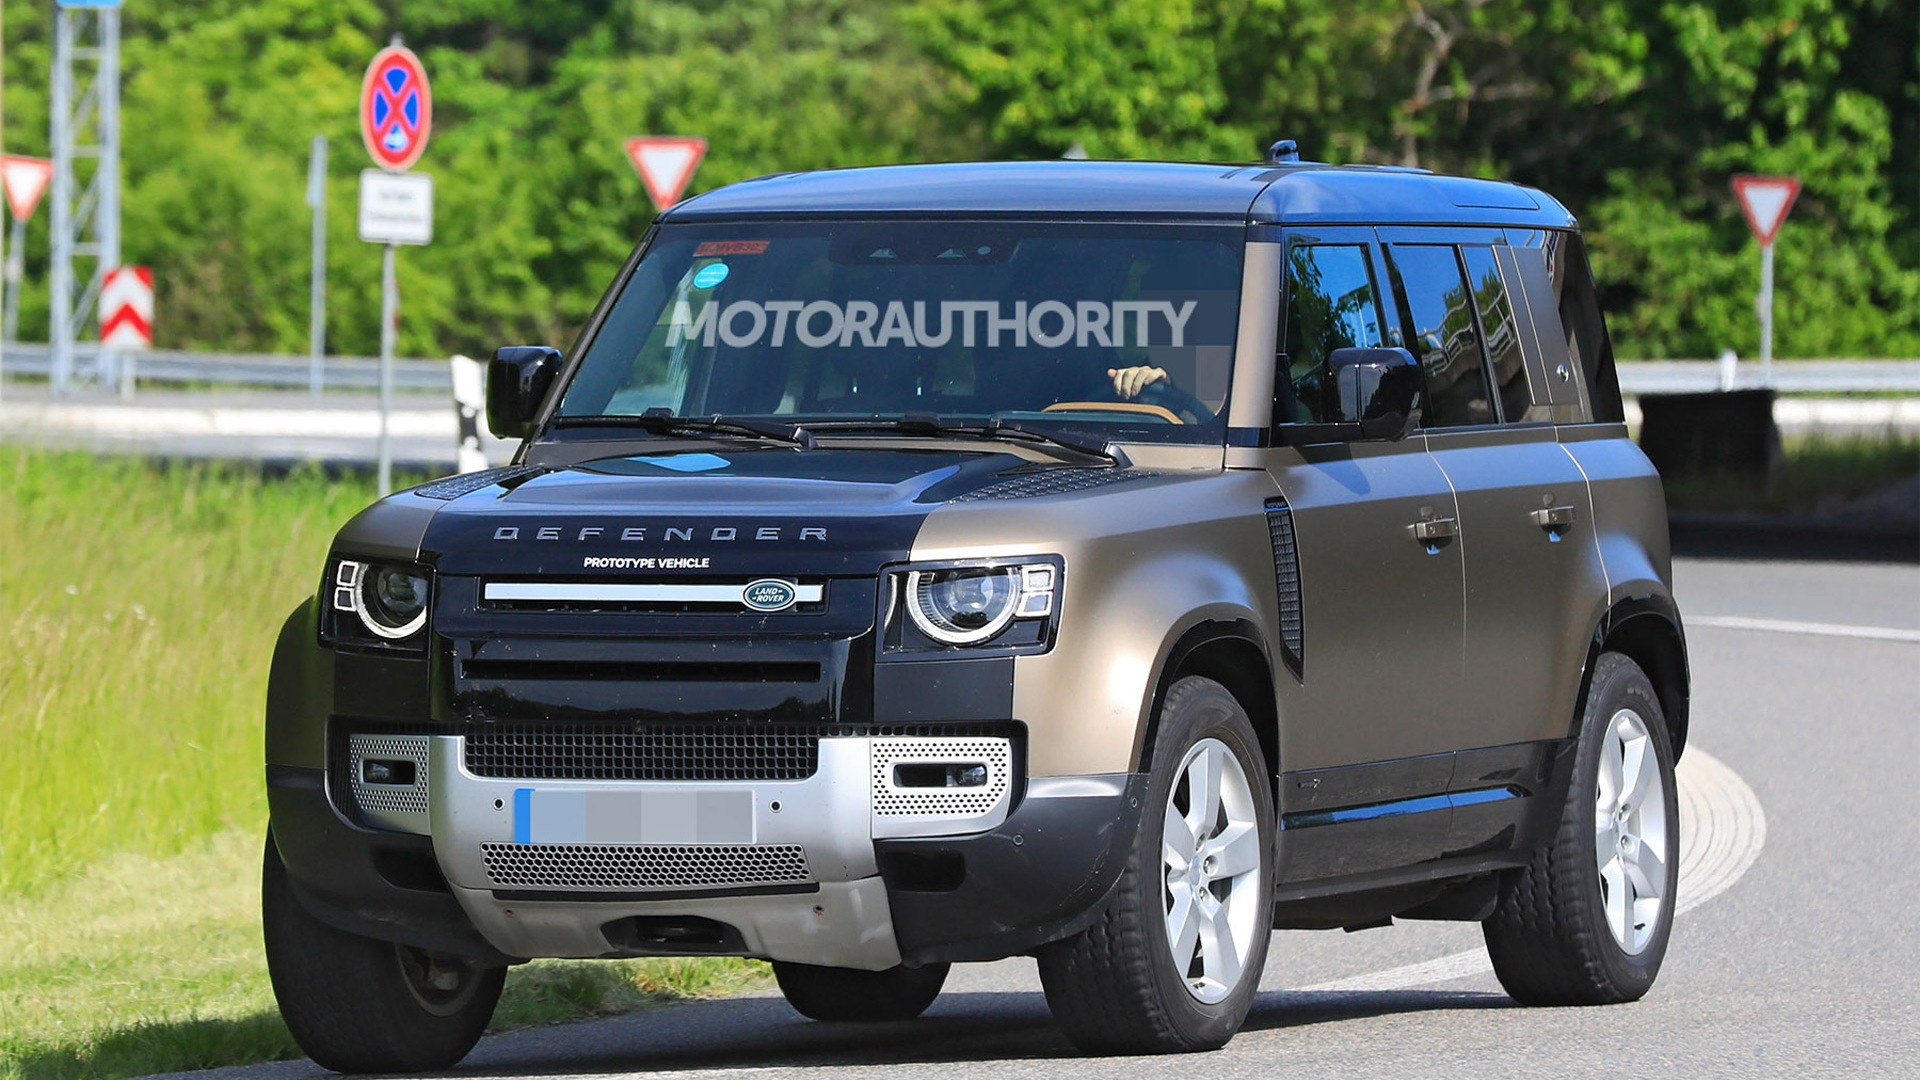 2022 Land Rover Defender V-8 test mule spy shots - Photo credit: S. Baldauf/SB-Medien